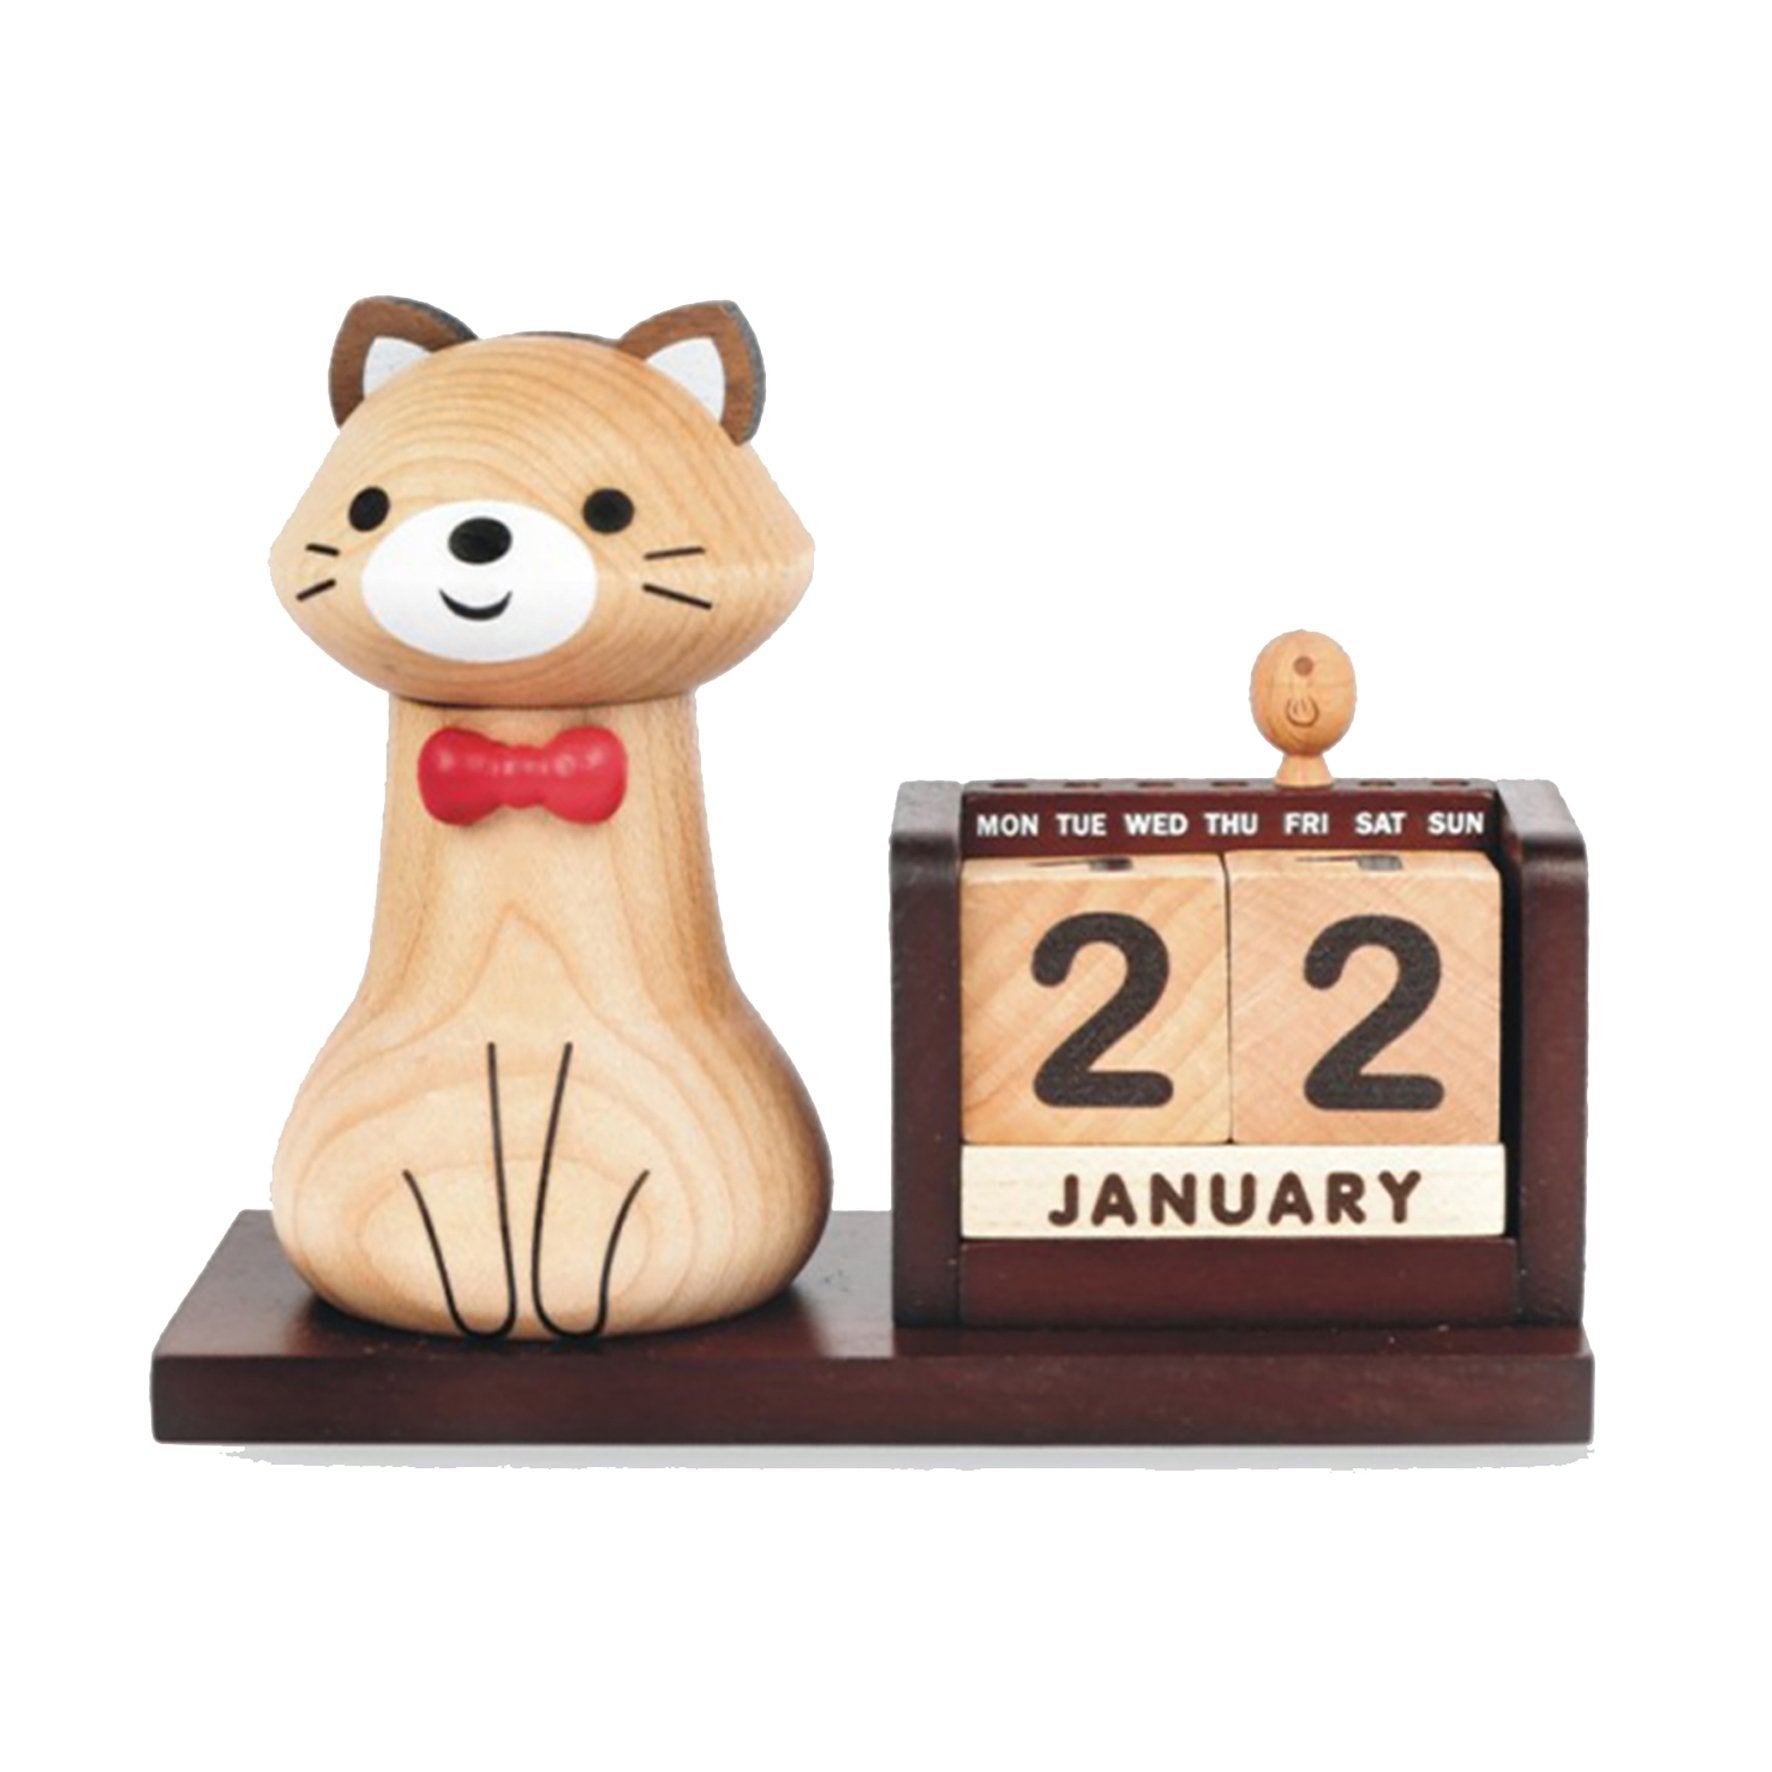 DECO Wooderful Life - Calendario Lápiz Gato